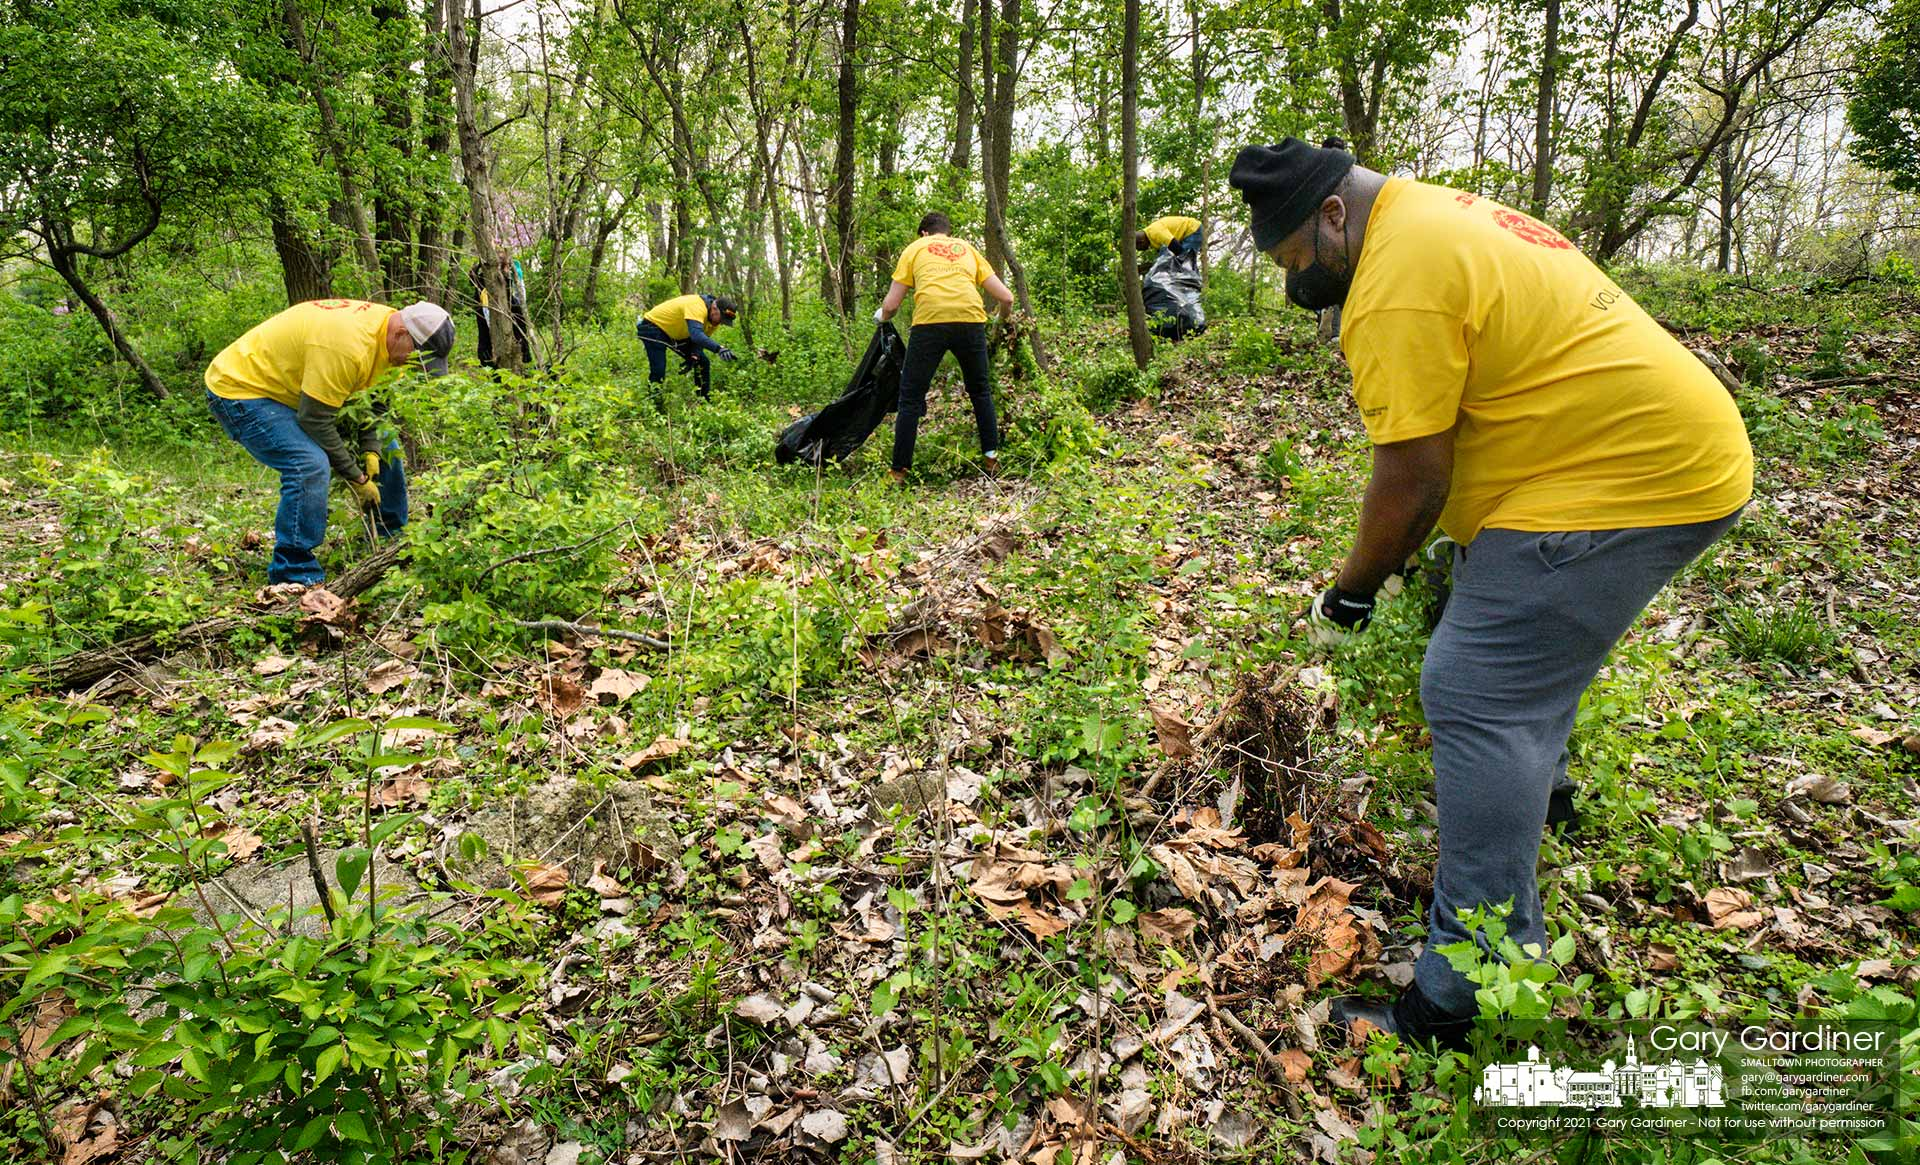 Volunteers from DHL remove invasive species honeysuckle and garlic mustard plants from a wooded section of Heritage Park. My Final Photo for April 23, 2021.